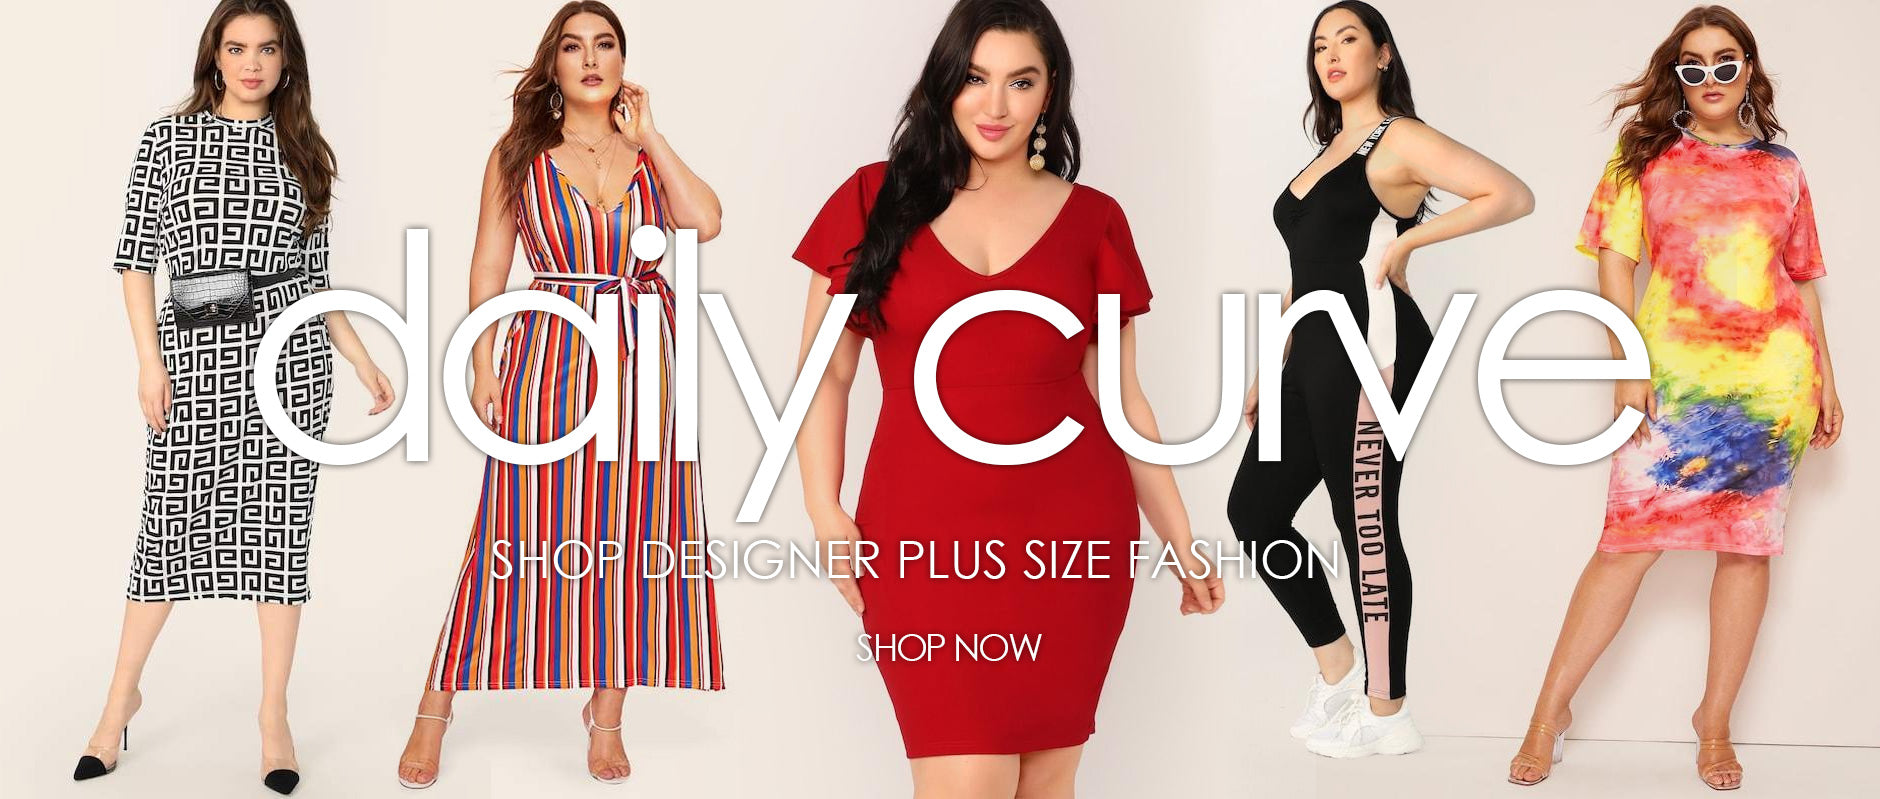 385e7998e33 Welcome to Plussizefix - Shop Plus Size Clothing